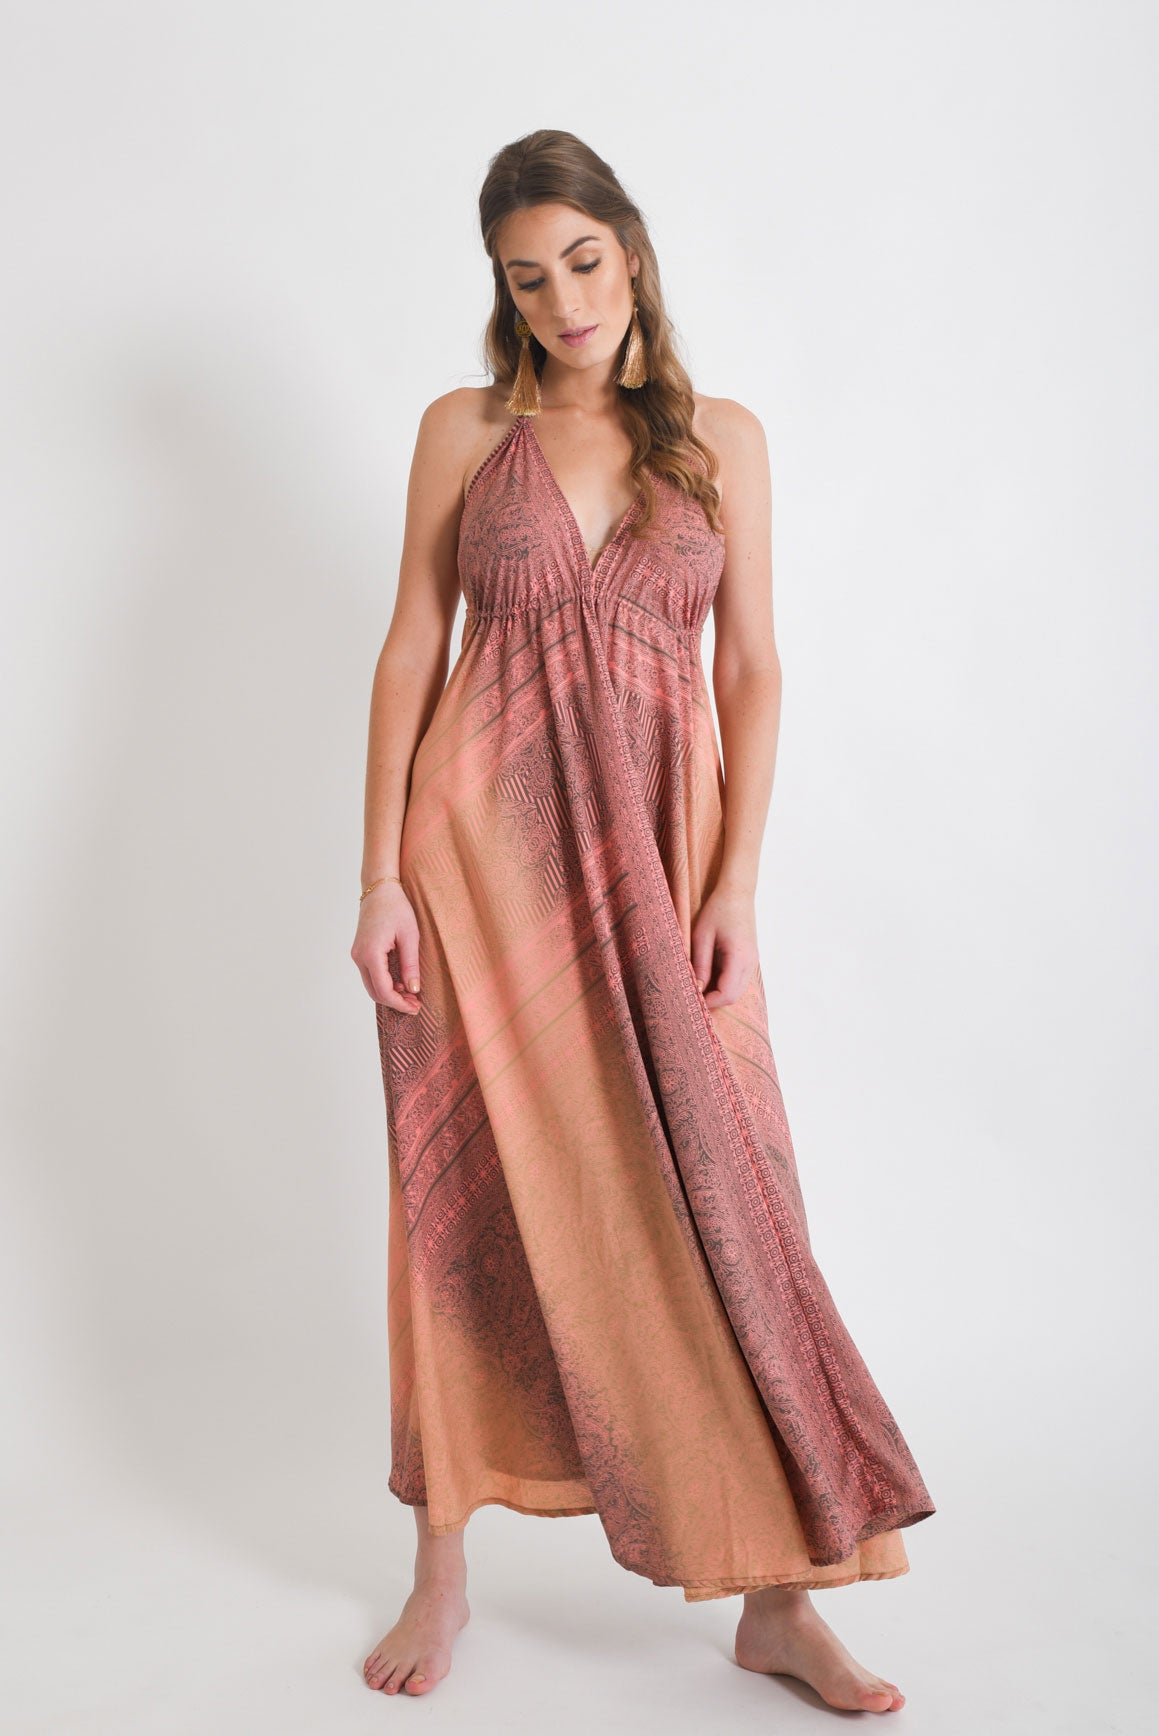 580ca2e9408b0 Shop Women s Maxi Dress Paisley Pink